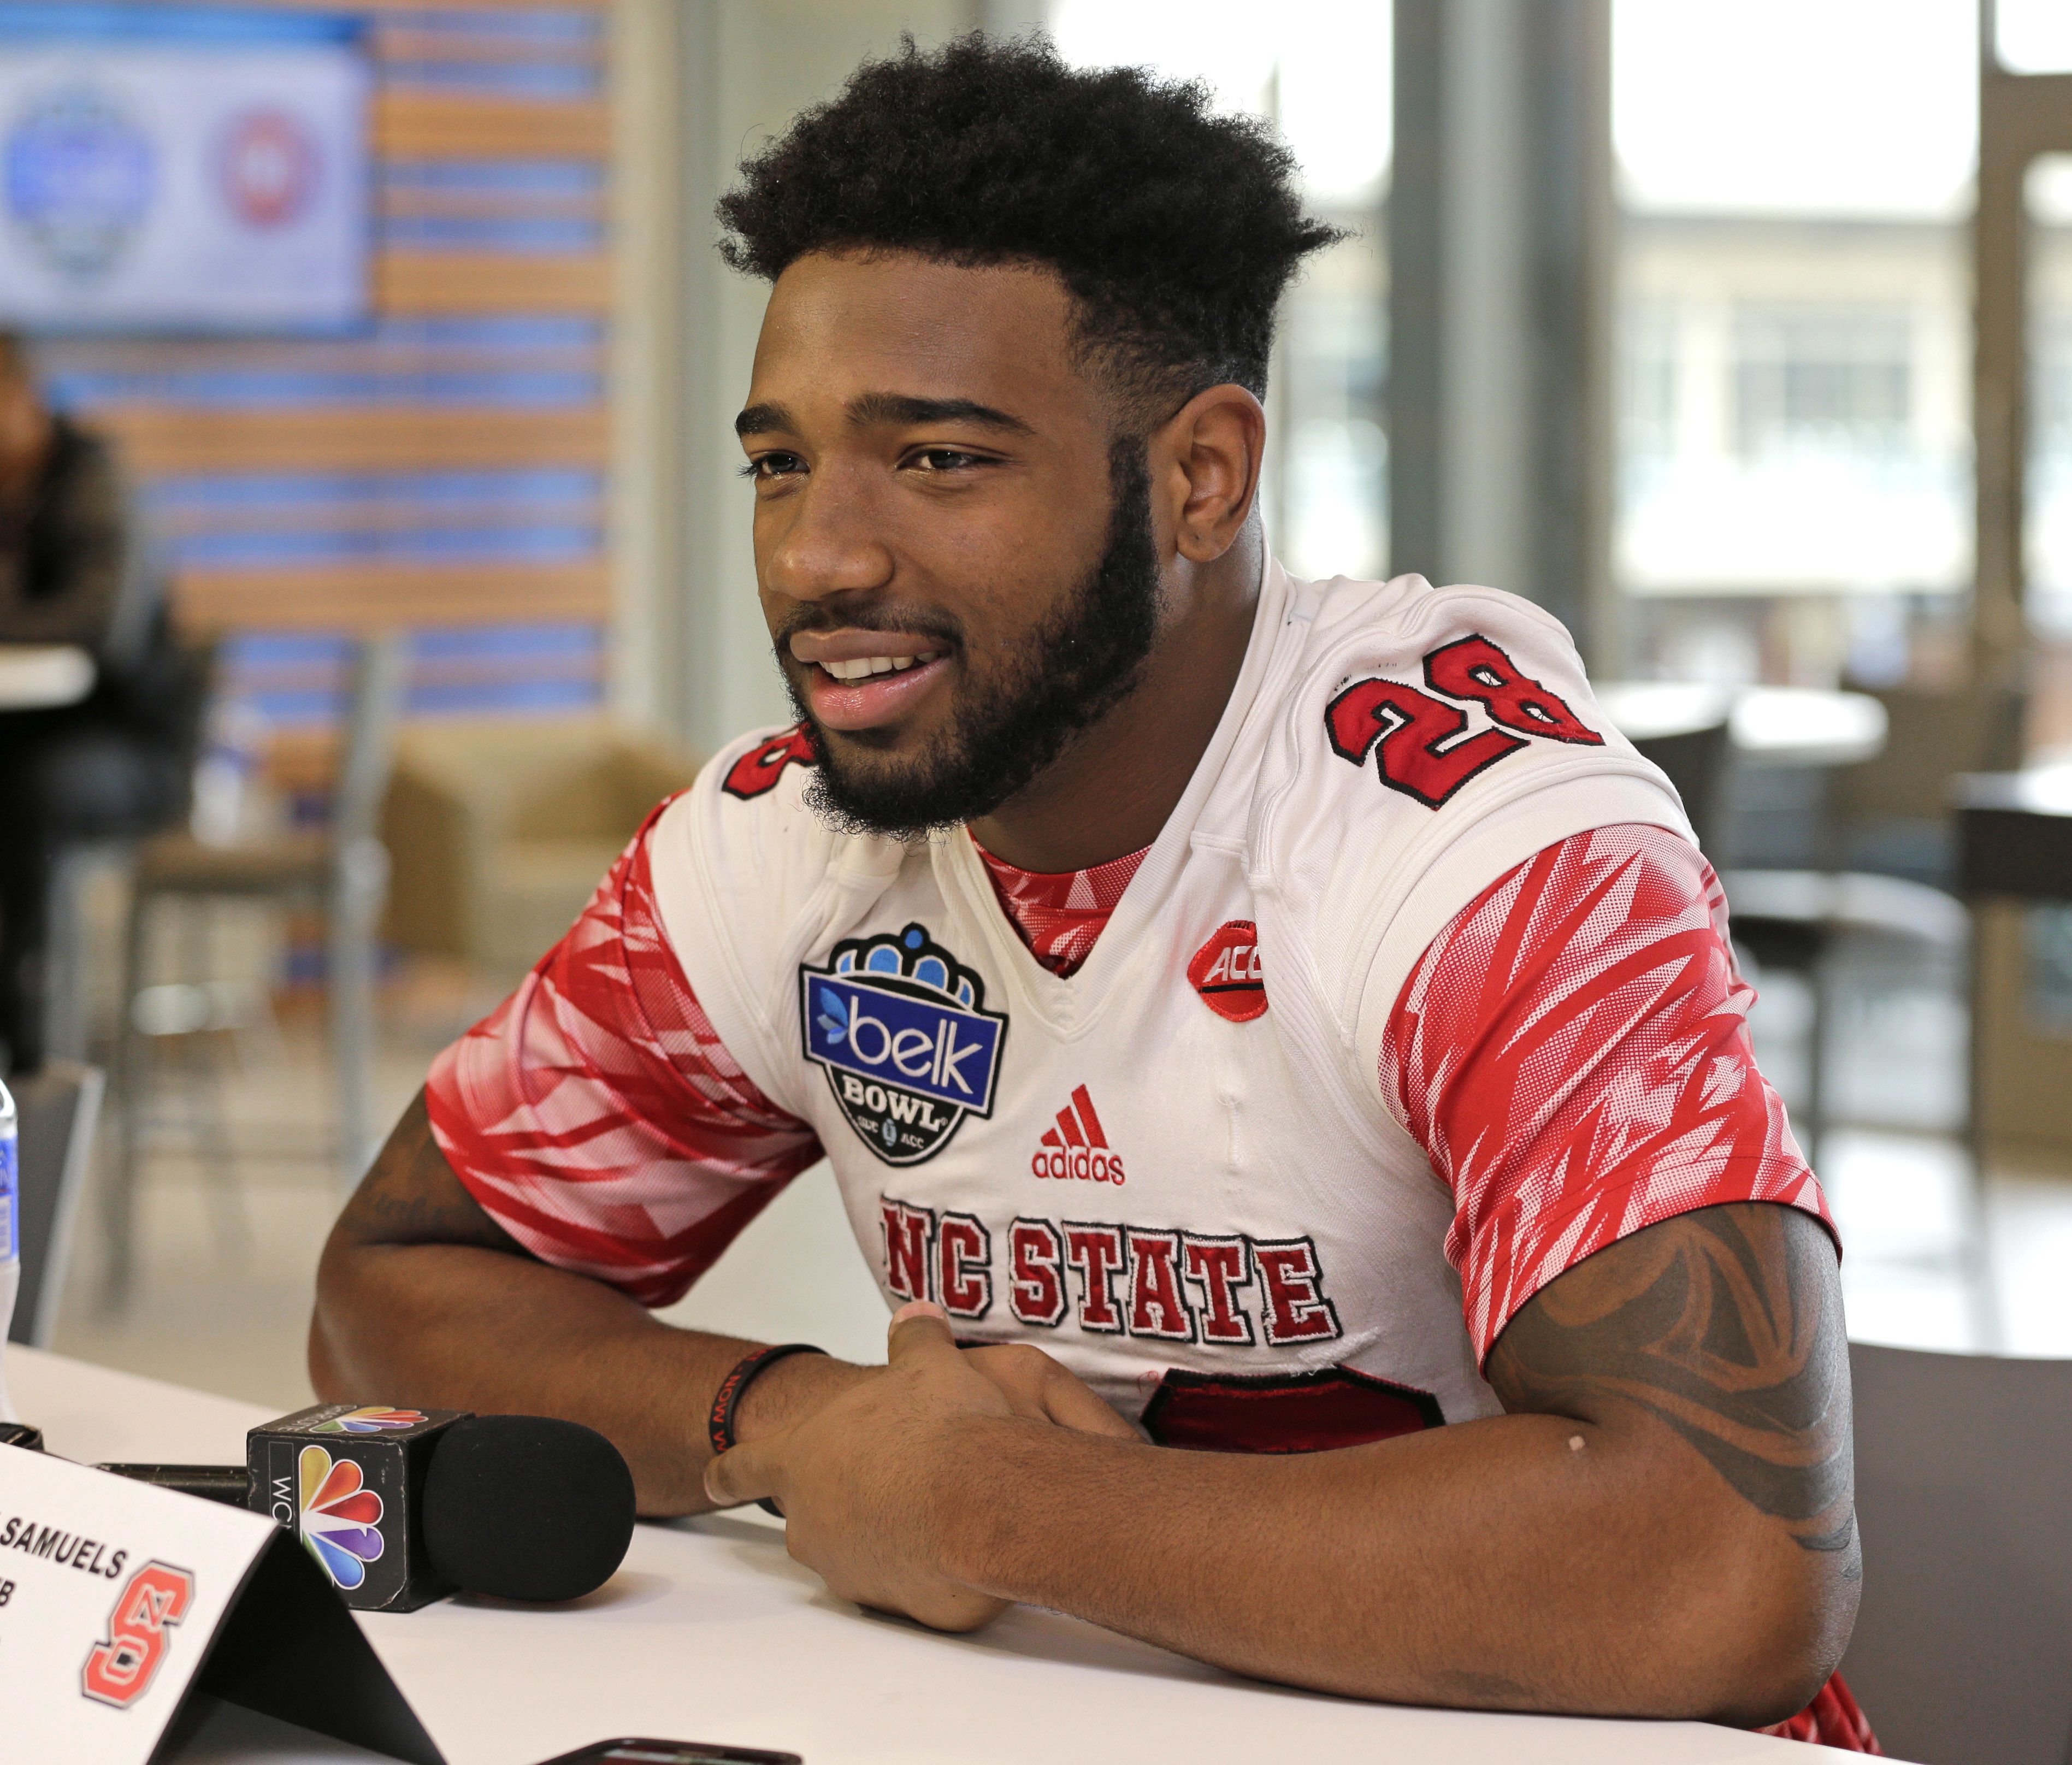 FILE - In this Tuesday, Dec. 29, 2015, file photo, North Carolina State's Jaylen Samuels speaks to the media during a news conference for the Belk Bowl NCAA college football game in Charlotte, N.C. Samuels had a combined 16 rushing and receiving touchdown